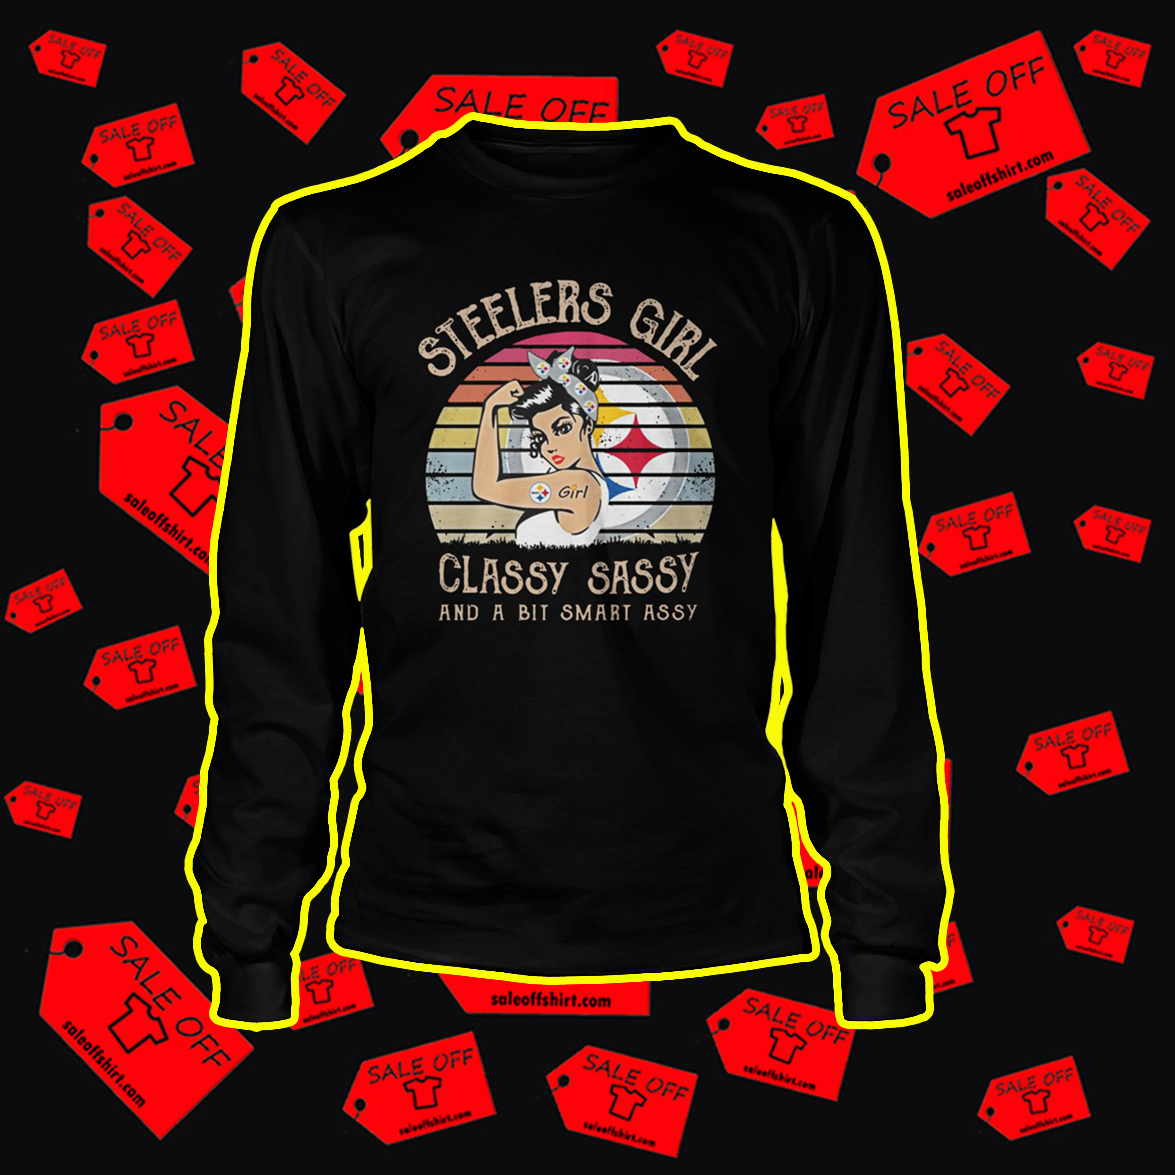 Steelers Girl Classy Sassy And A Bit Smart Assy longsleeve tee